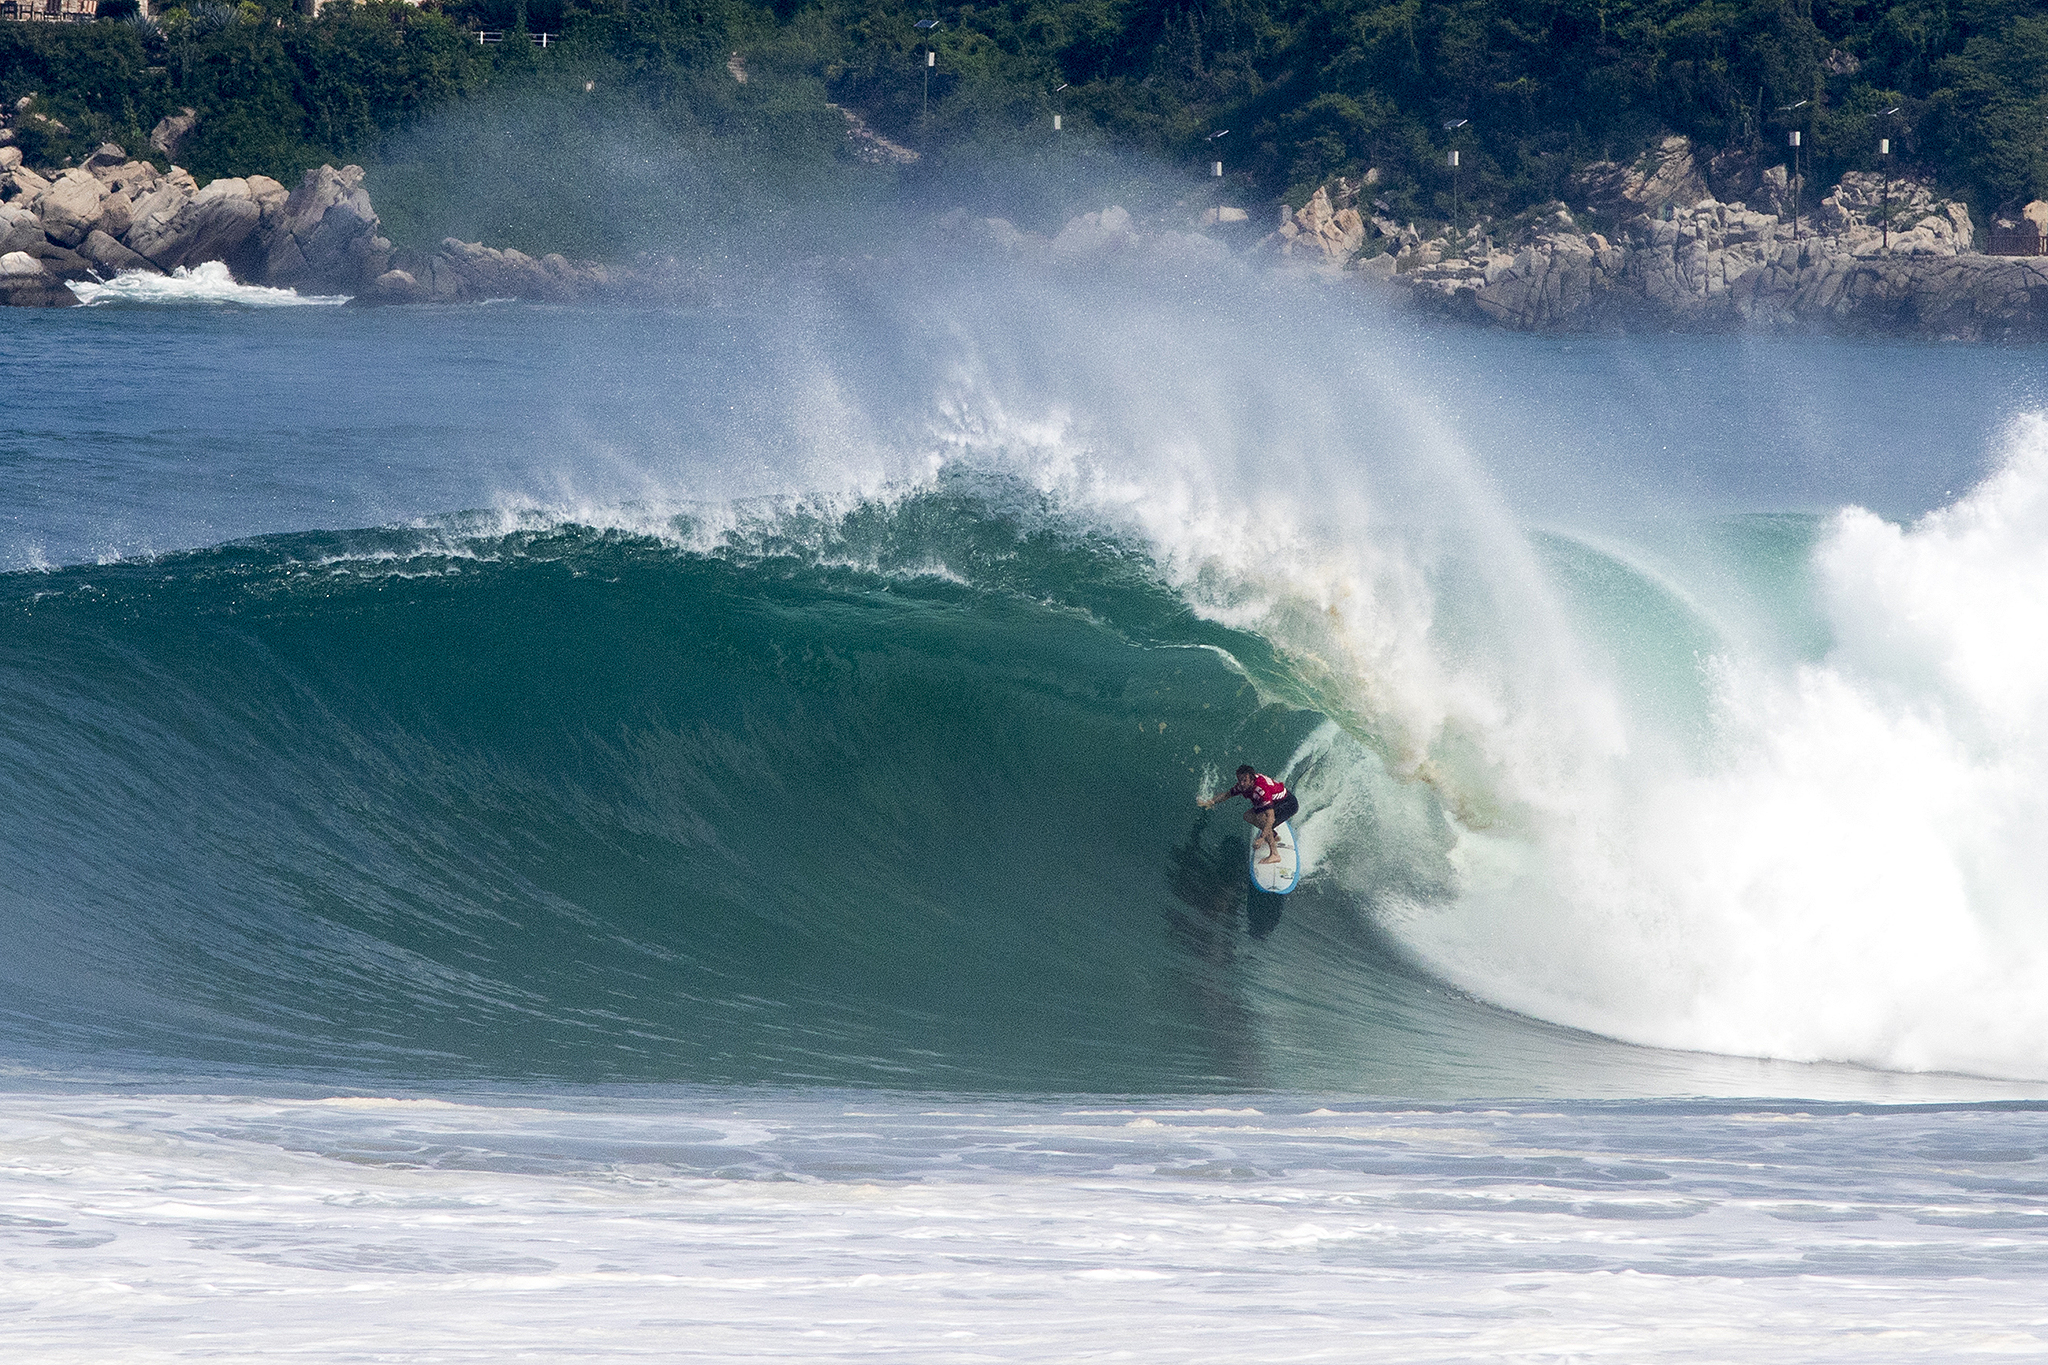 Grant 'Twiggy' Baker of the South Africa (pictured) wins the final after scoring a perfect 10-point ride for riding an enomrous tube during the final of the Puerto Escondido Challenge in Mexico on Saturday June 25, 2016. Thirty foot waves (ten meter) waves poured into Puerto Escondido that saw the Big Wave World Tour Puerto Escondido Challenge resume in Mexico on Saturday June 26, 2016. PHOTO: © WSL / Morales Social: @wsl @moralesedwin This image is the copyright of the World Surf League and is provided royalty free for editorial use only, in all media now known or hereafter created. No commercial rights granted. Sale or license of the images is prohibited. This image is a factually accurate rendering of what it depicts and has not been modified or augmented except for standard cropping and toning. ALL RIGHTS RESERVED.